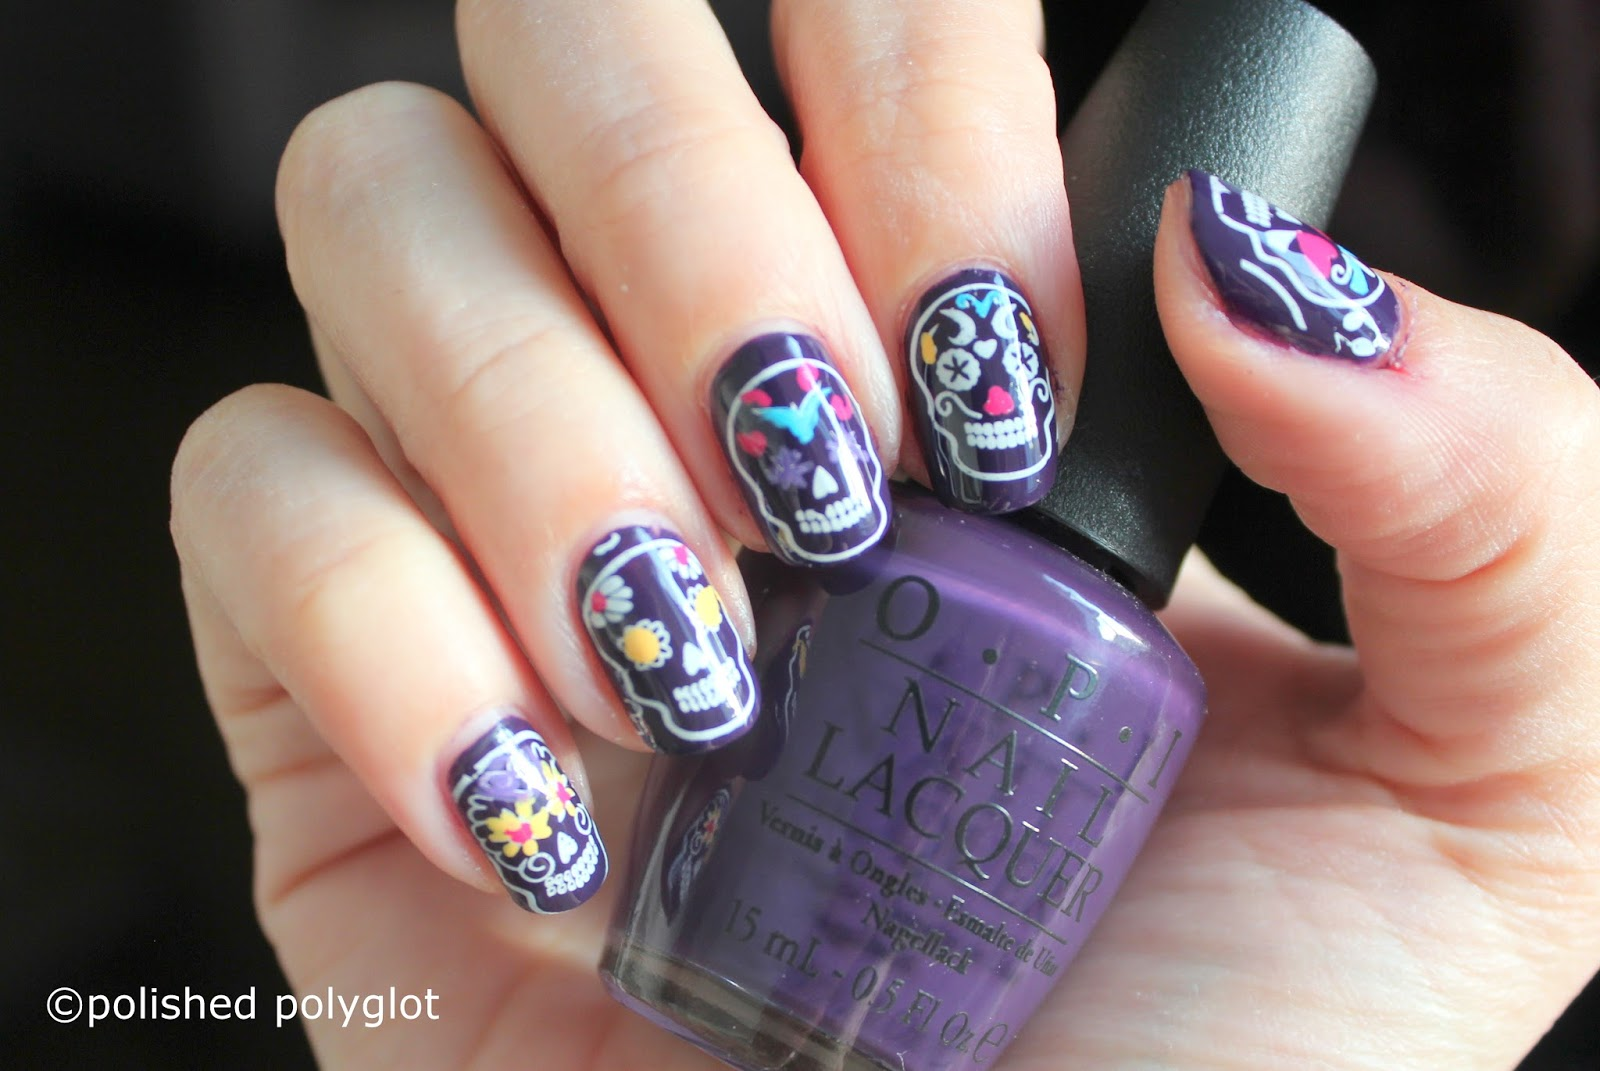 Nail art manicure with sugar skulls nail crazies unite i thought to do a really fun manicure but i didnt wanted to go all crazy with colors or the sugar skulls would be difficult to spot prinsesfo Image collections